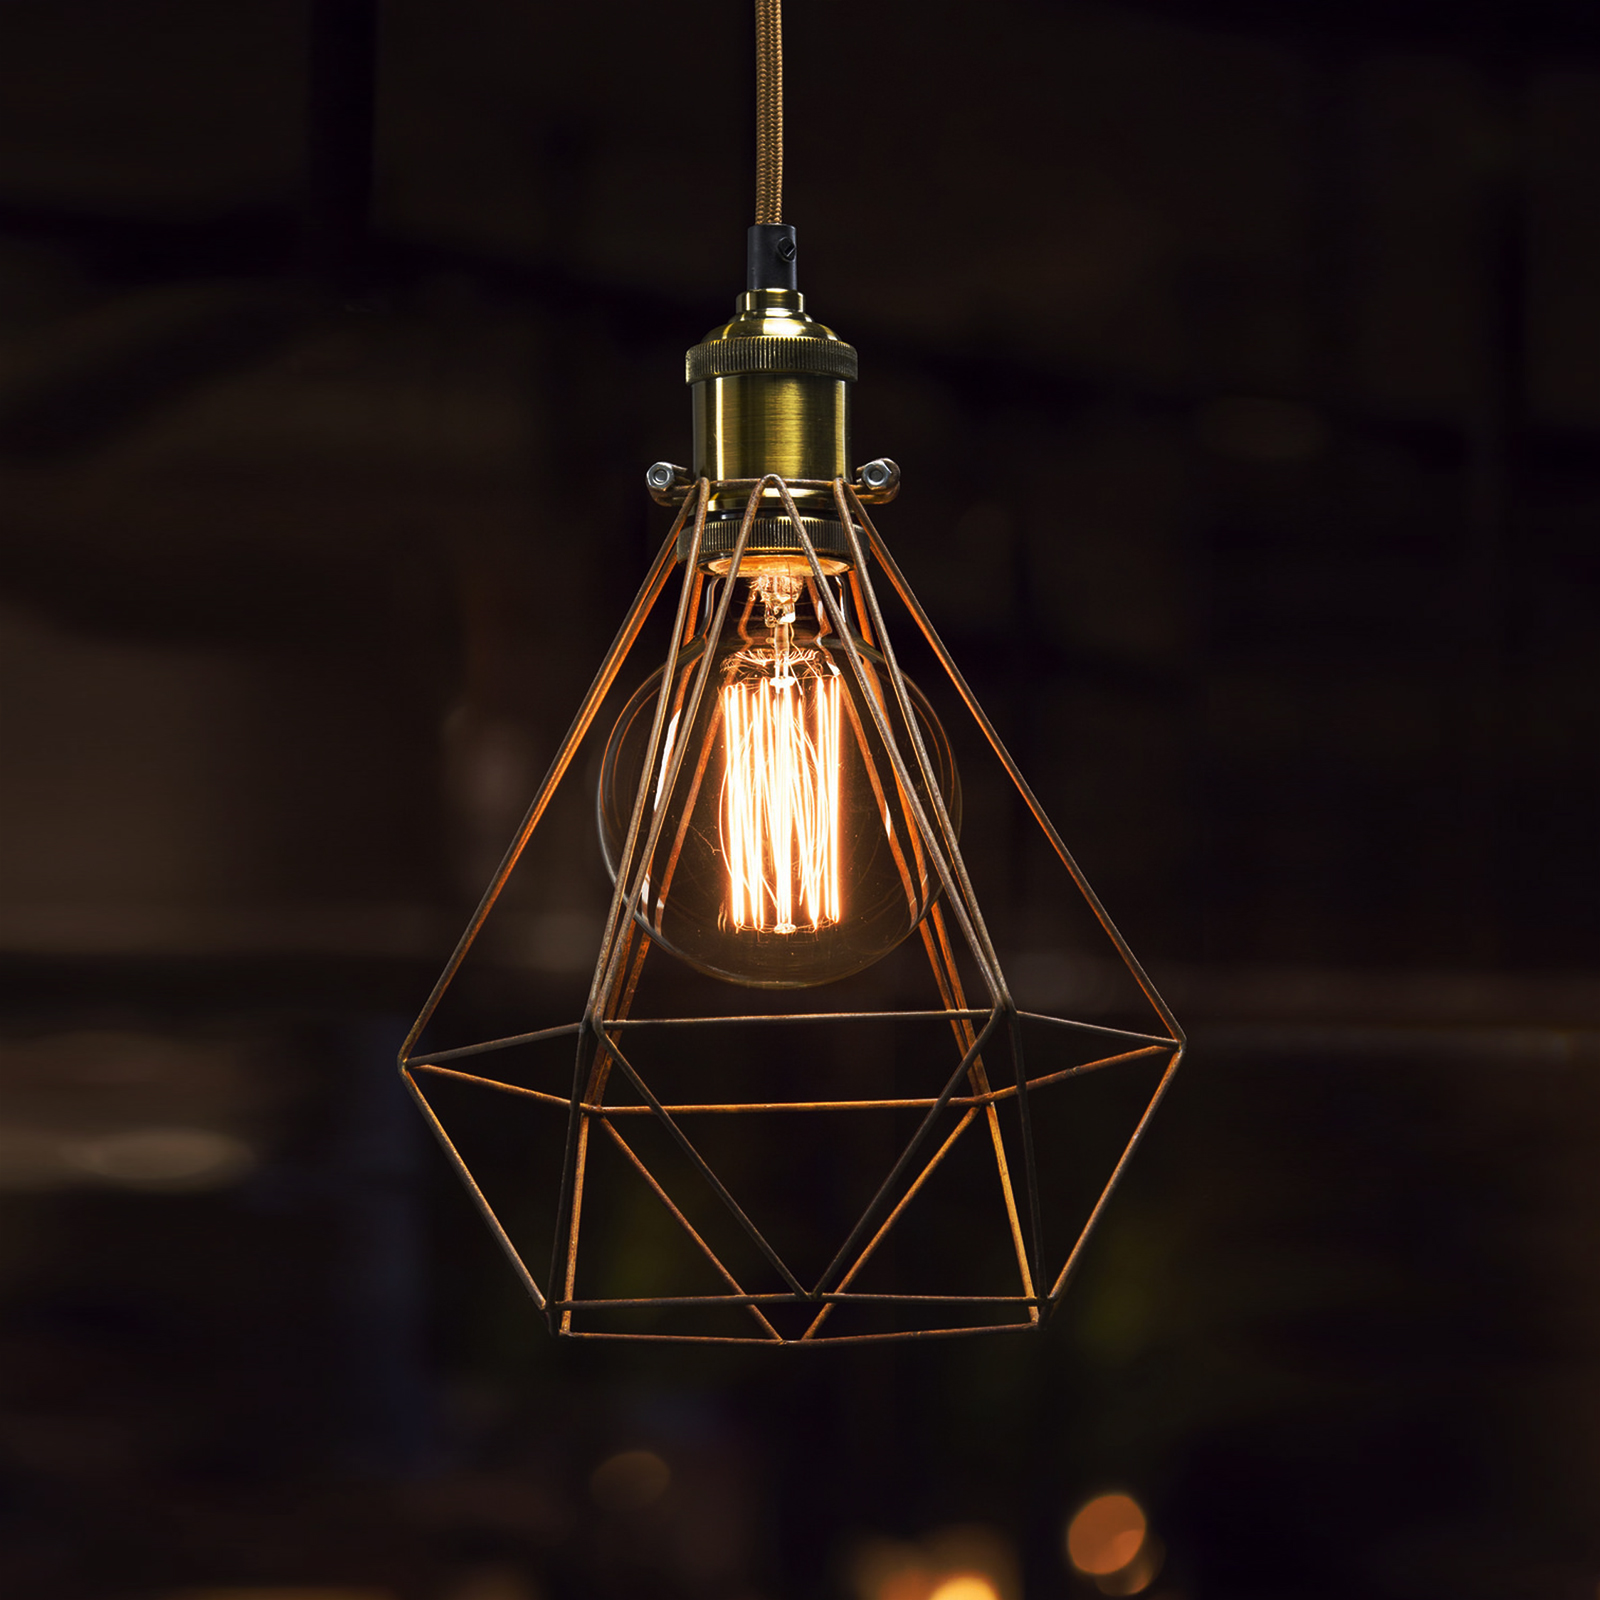 Industrial Vintage Lighting Bulb Cage Light Fittings Bulb Cage Industrial Vintage